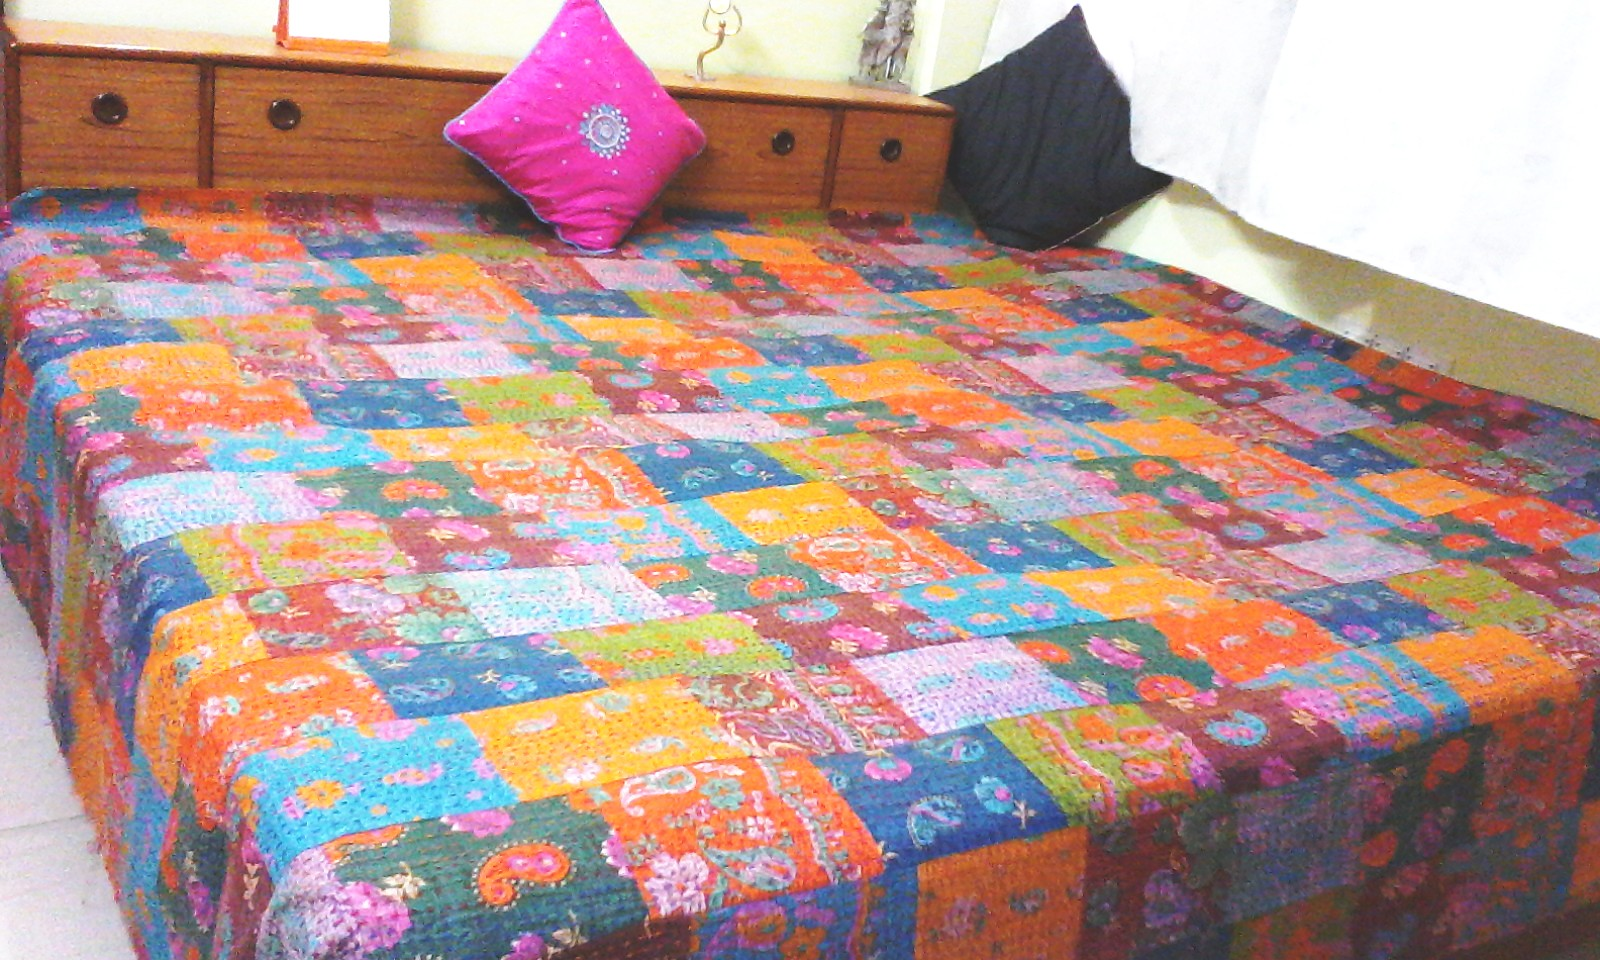 Patchwork Needlework Bed Covers